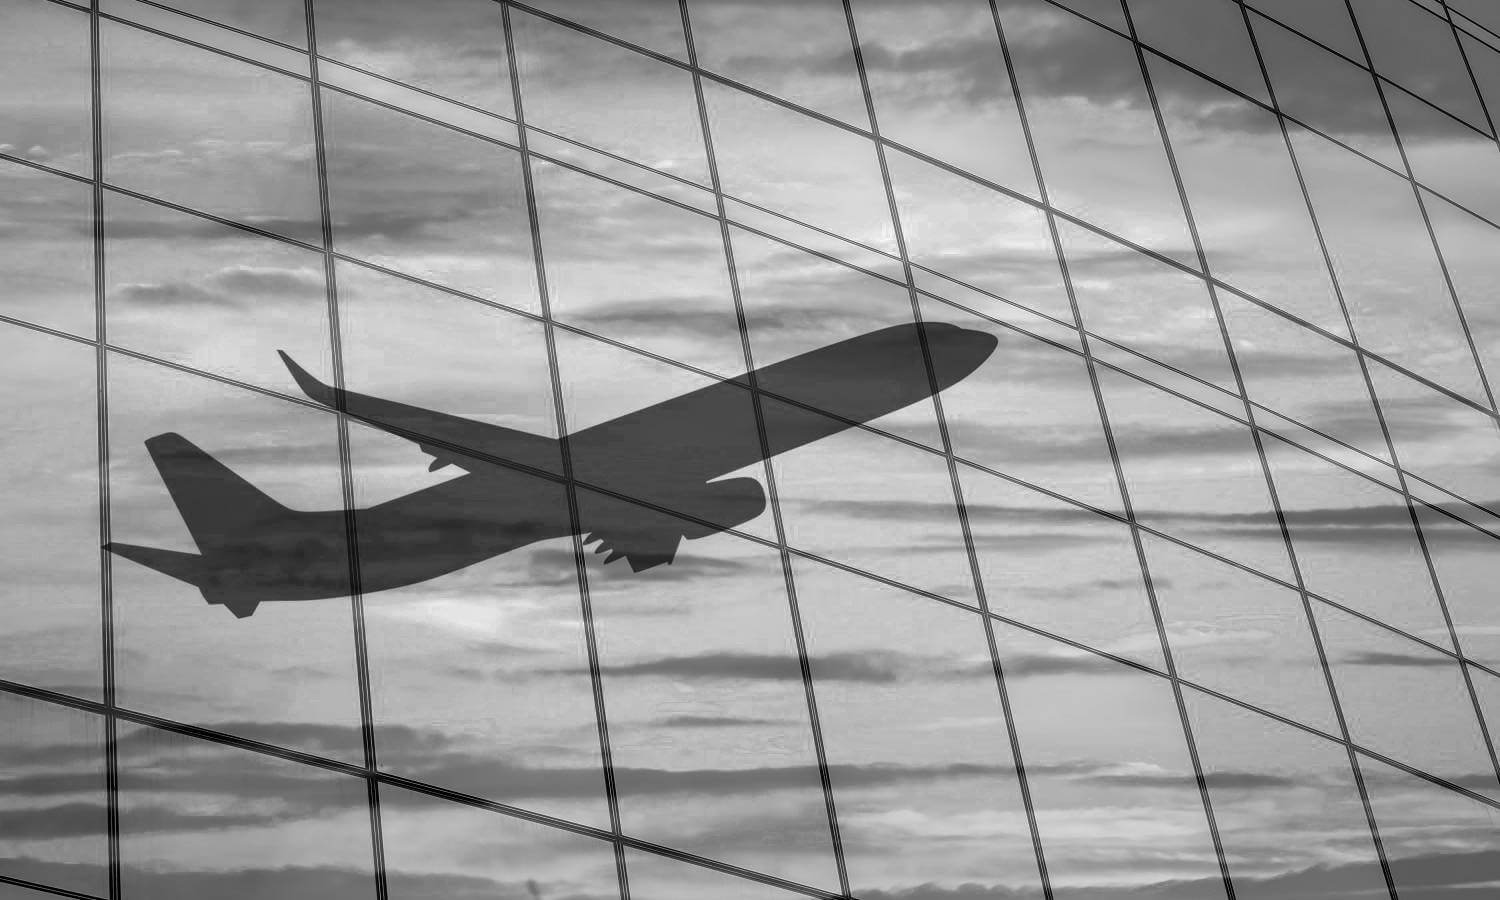 plane reflection office building